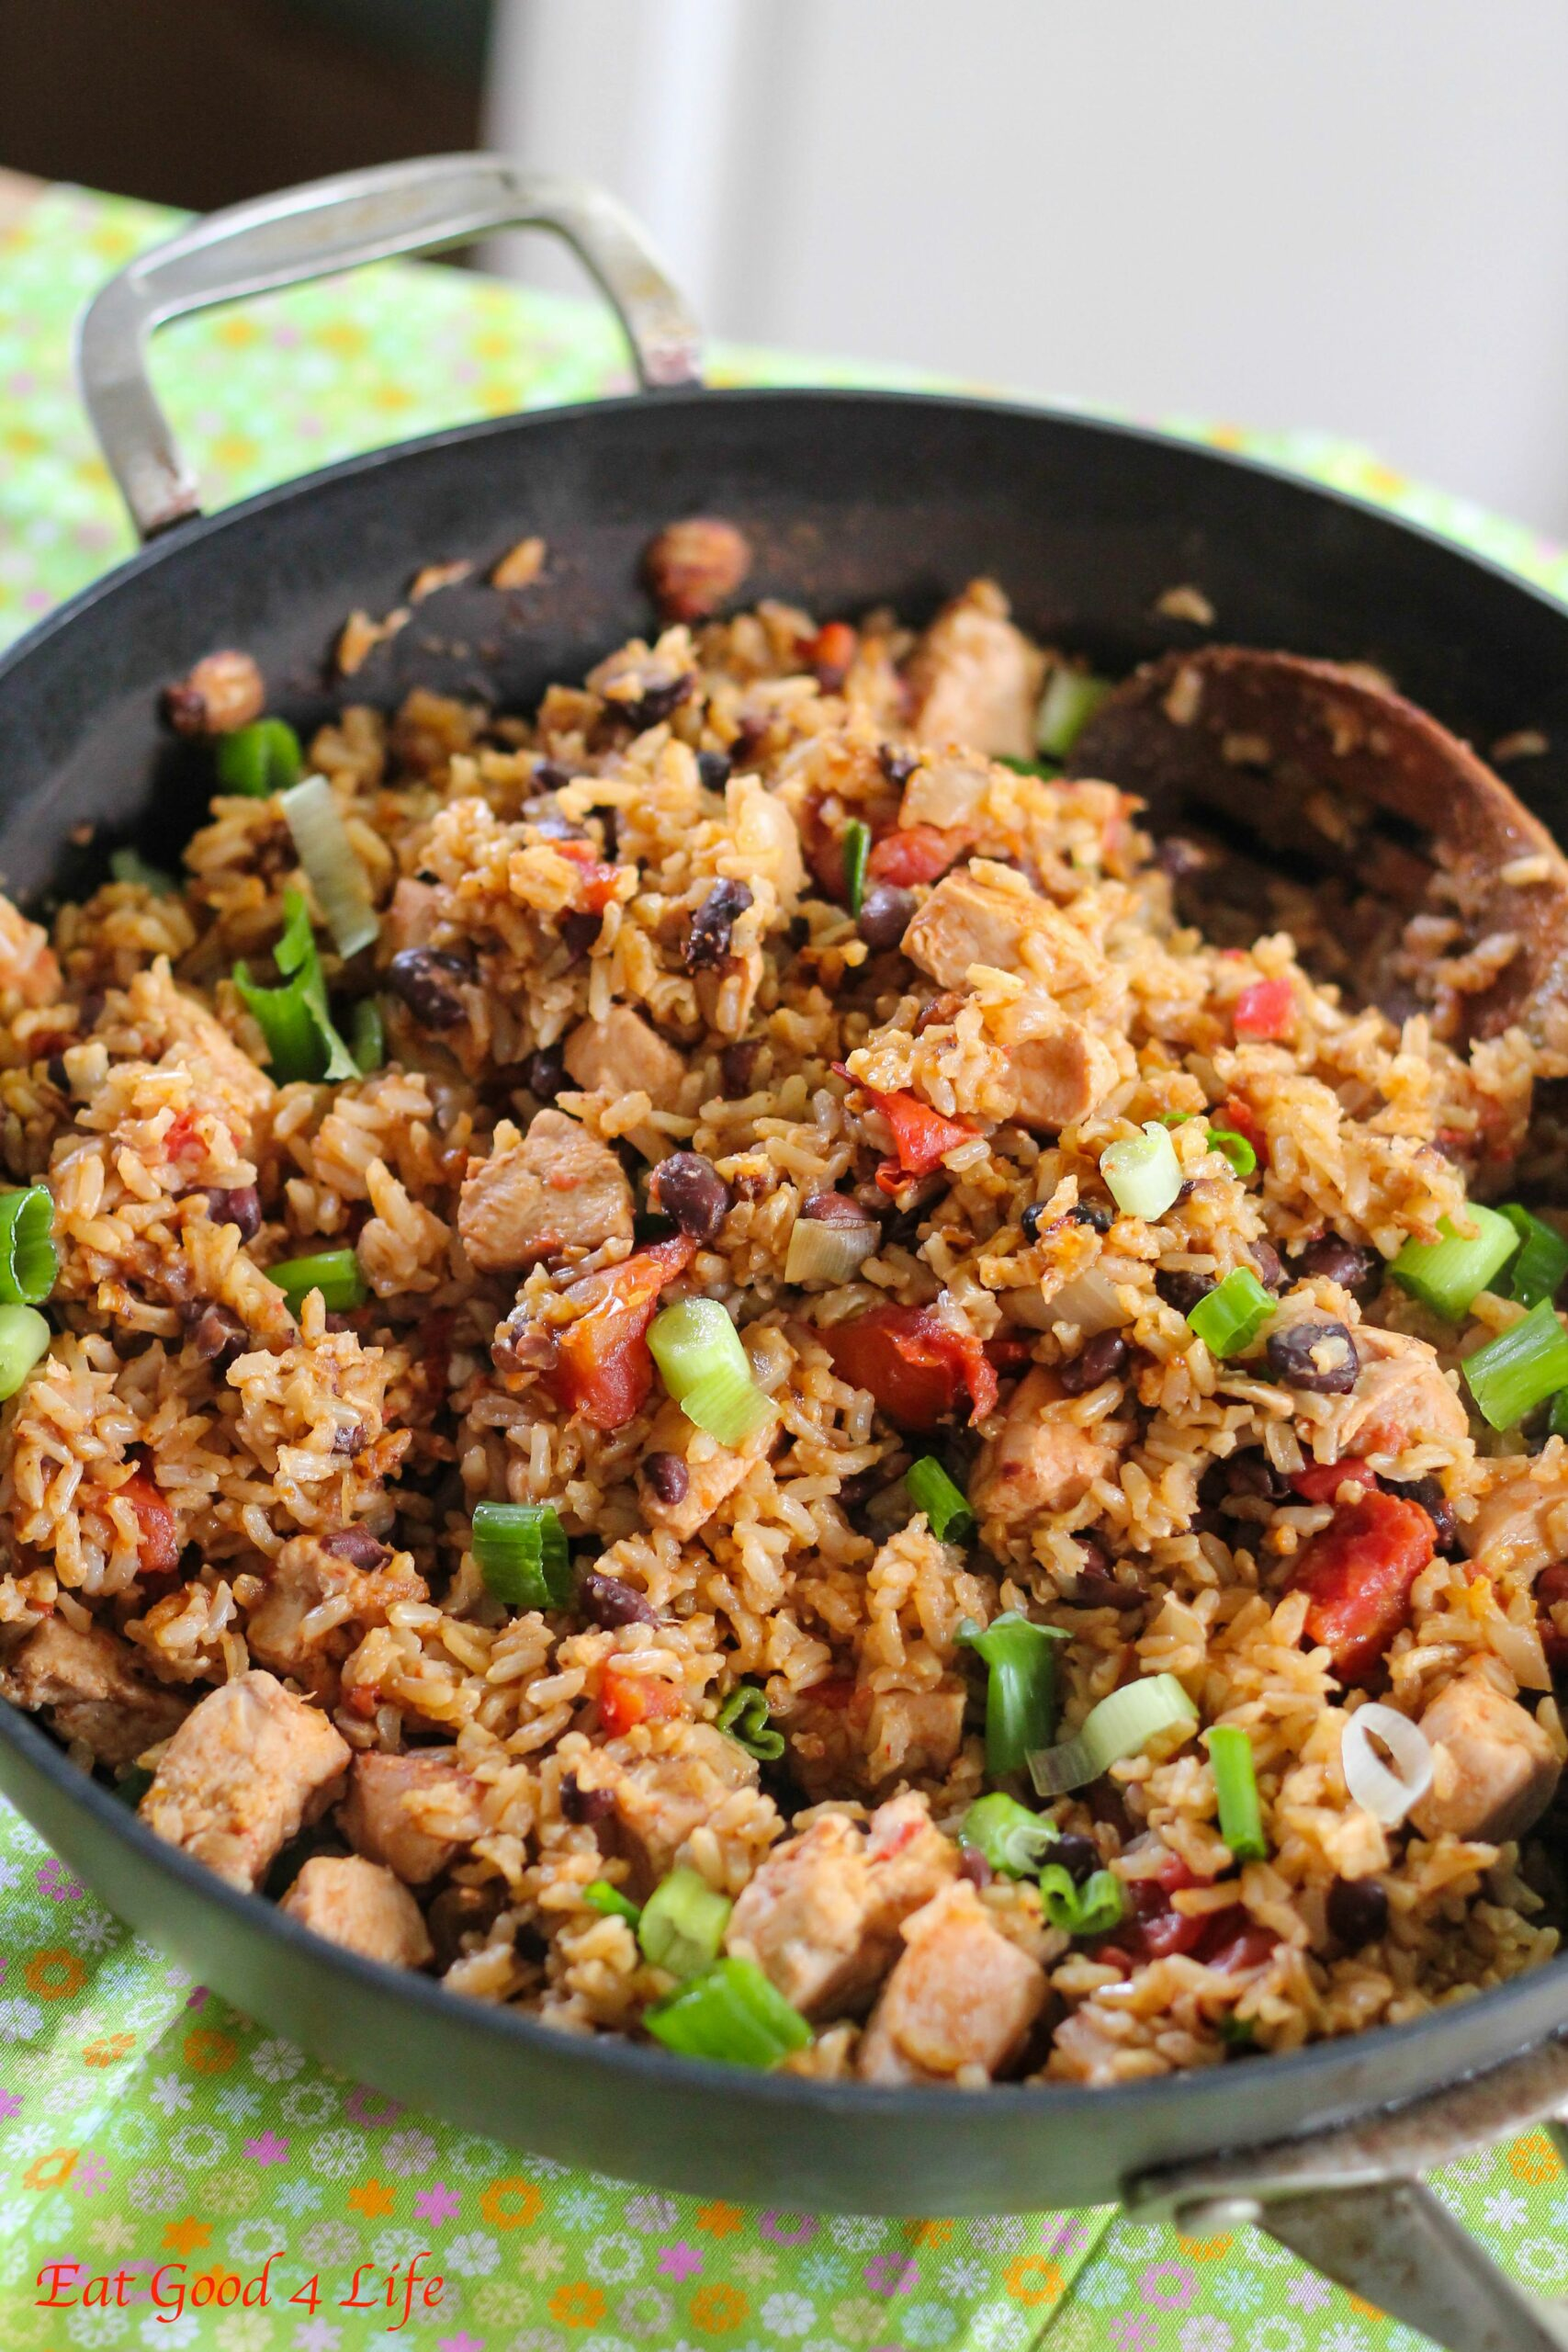 No-fuss black beans, chicken and rice - Recipes Rice And Black Beans